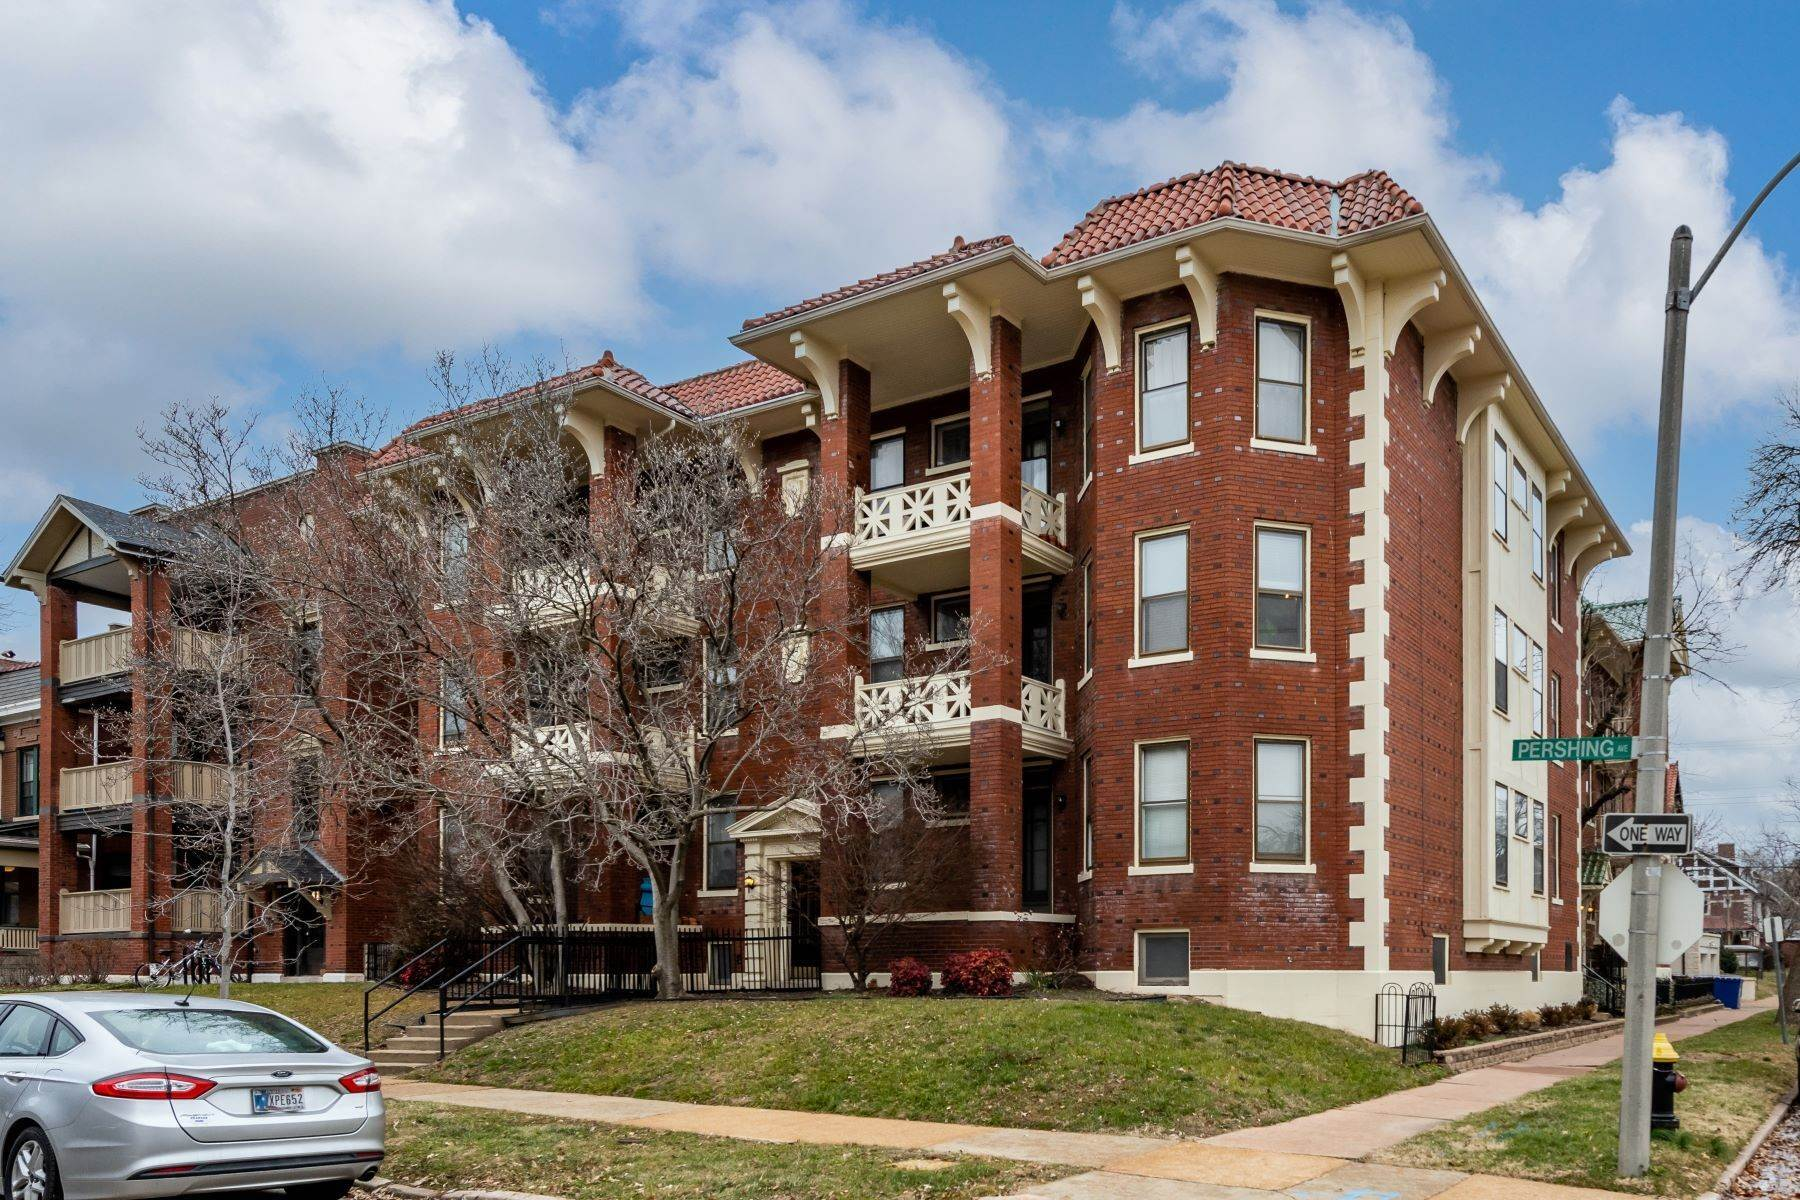 Condominiums for Sale at Large 2 Bedroom Condo Within Walking Distance to Washington University 6105 Pershing Avenue #2E St. Louis, Missouri 63112 United States